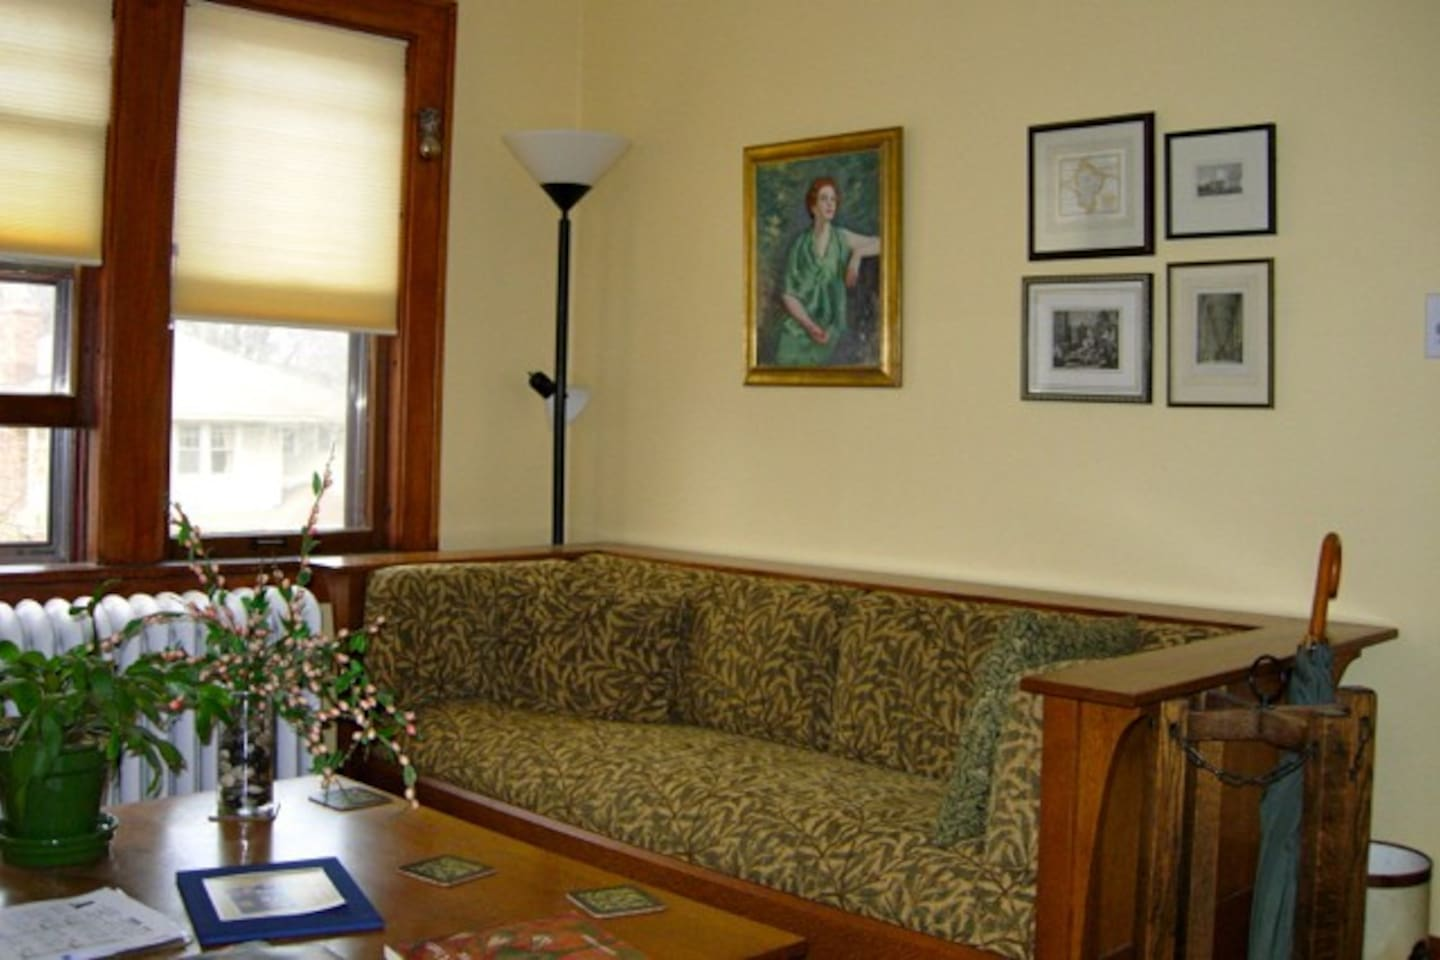 The living room with a Stickley settle (couch) and Stickley table in the 1926 condo.